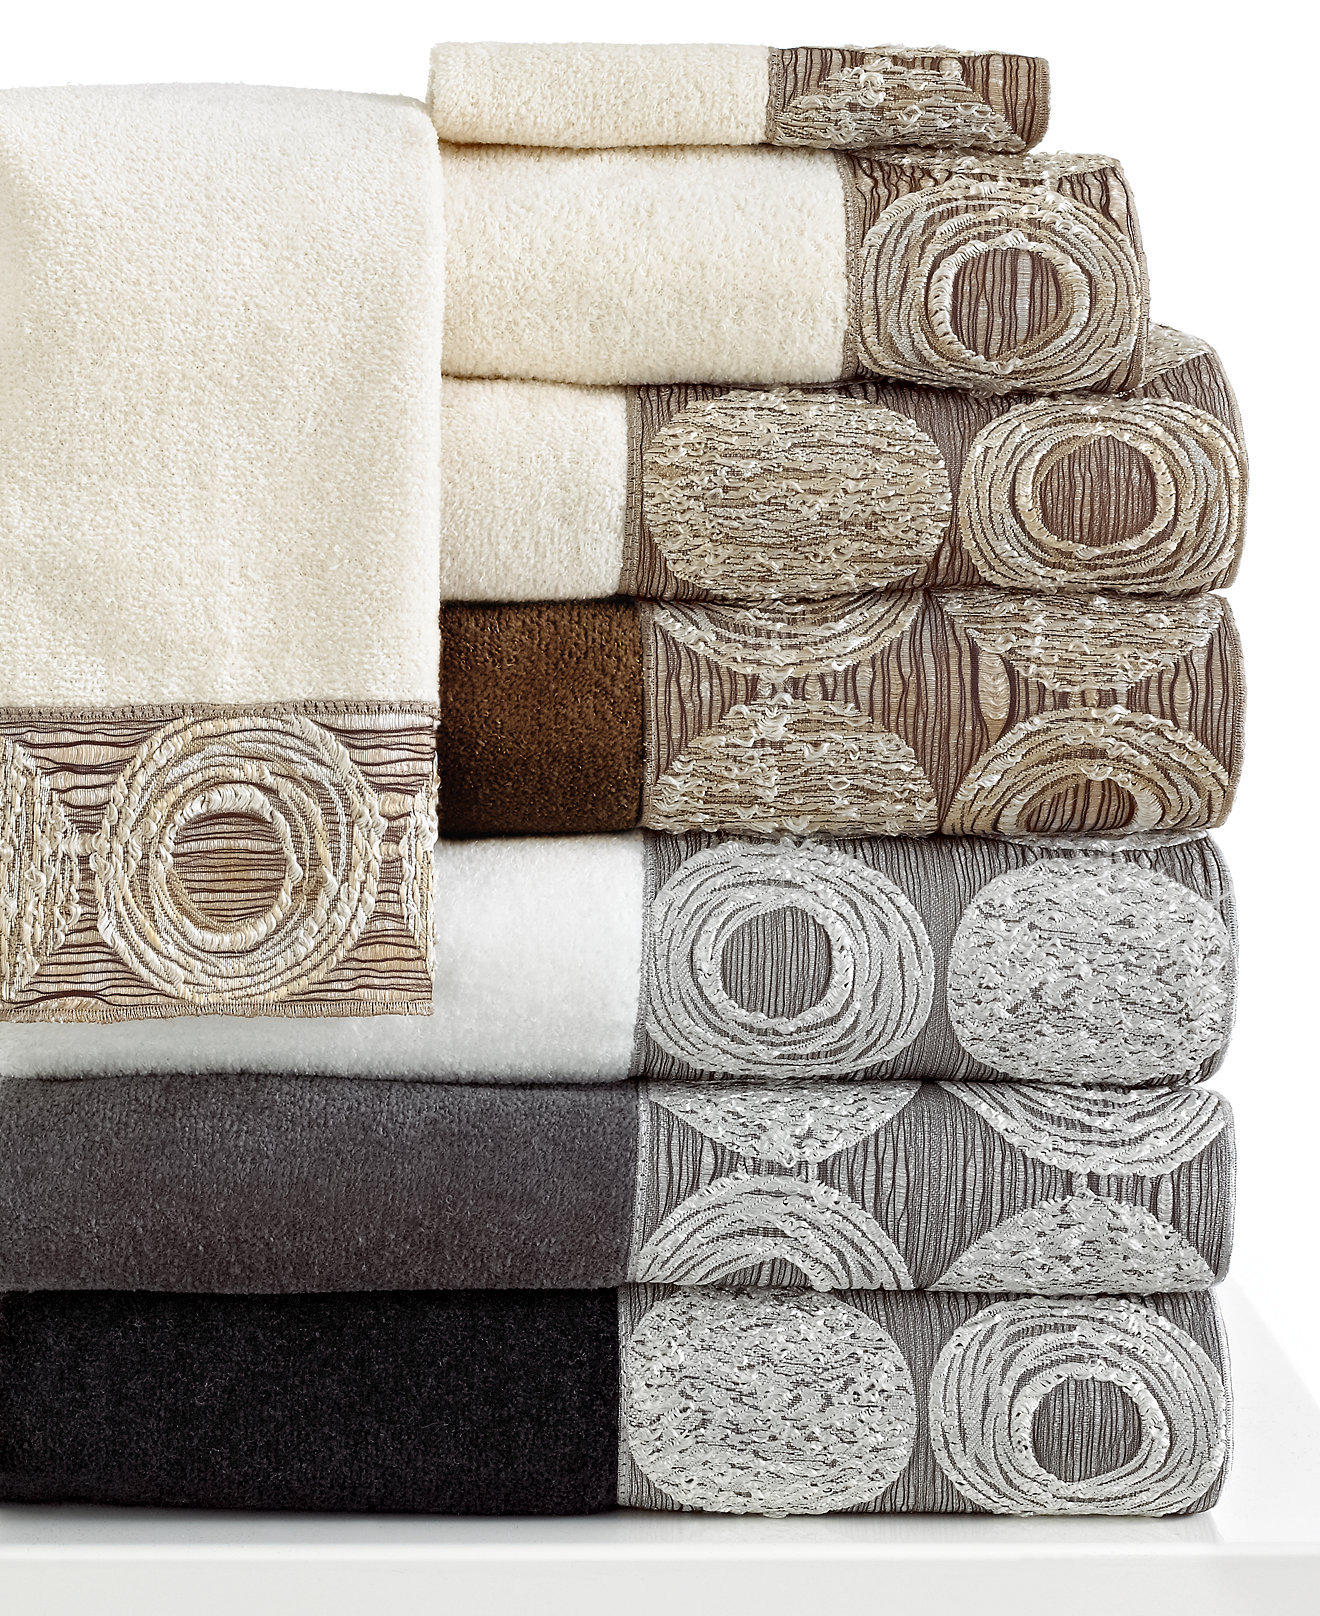 avanti bathrooms embellished bath towels avanti towels solid color fingertip towels avanti precision bath collection decorative hand towel avanti towels sale avanti towels bed bath beyond d